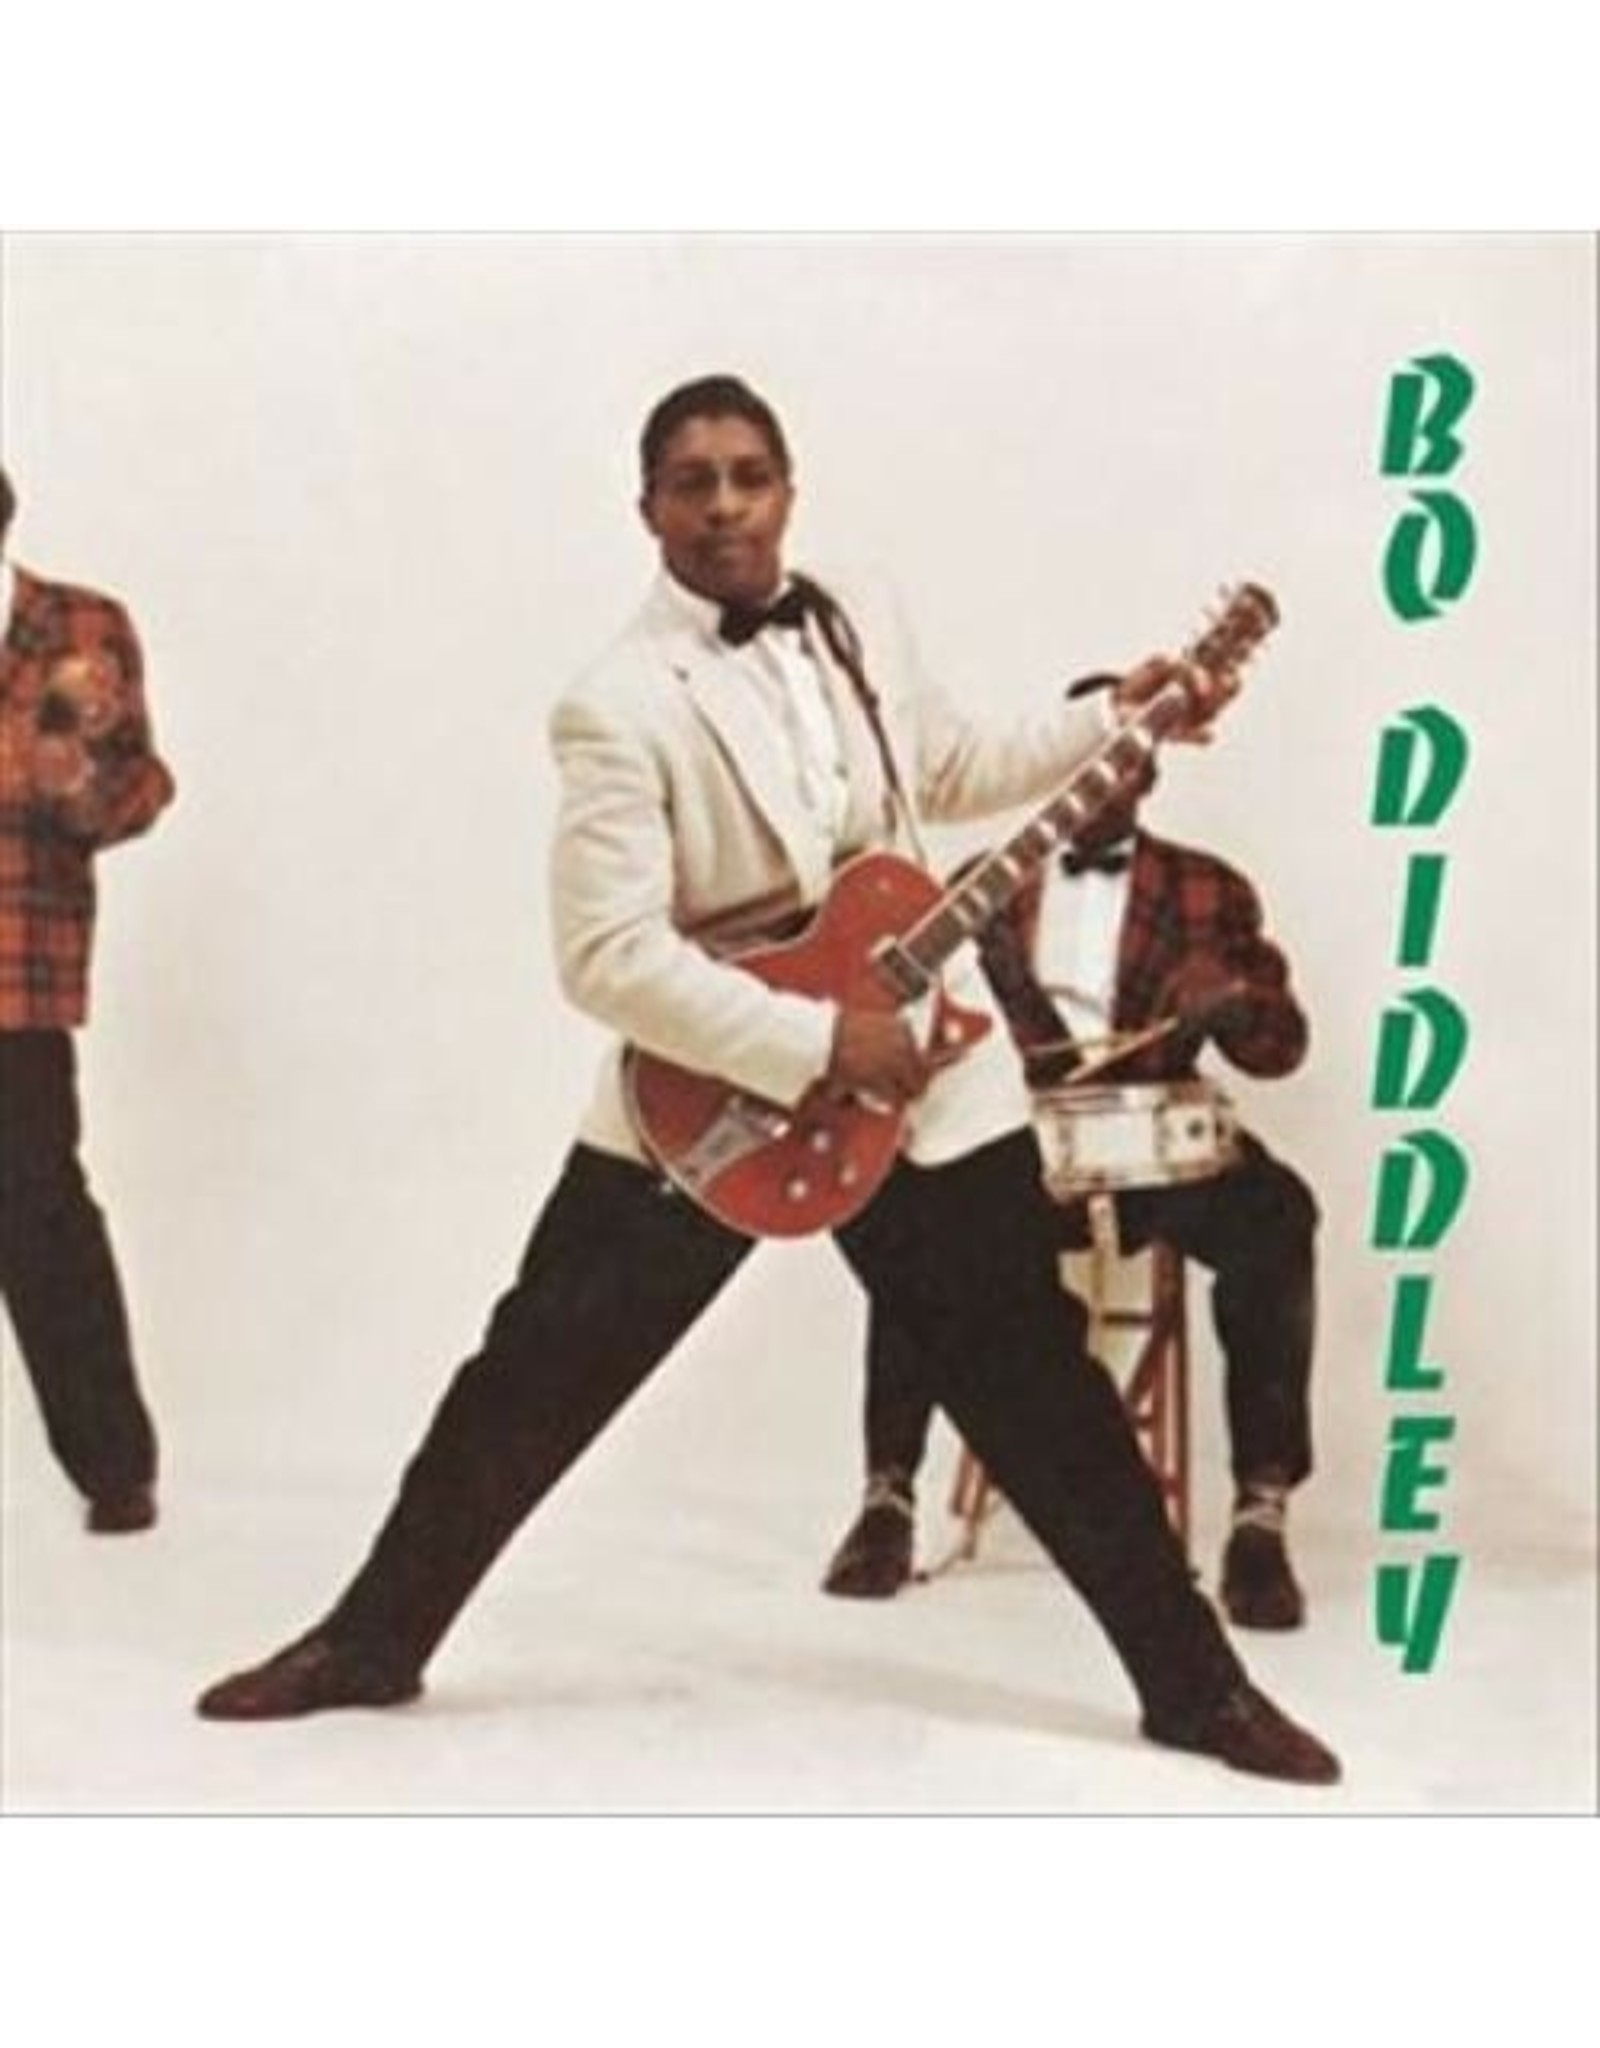 New Vinyl Bo Diddley - S/T LP